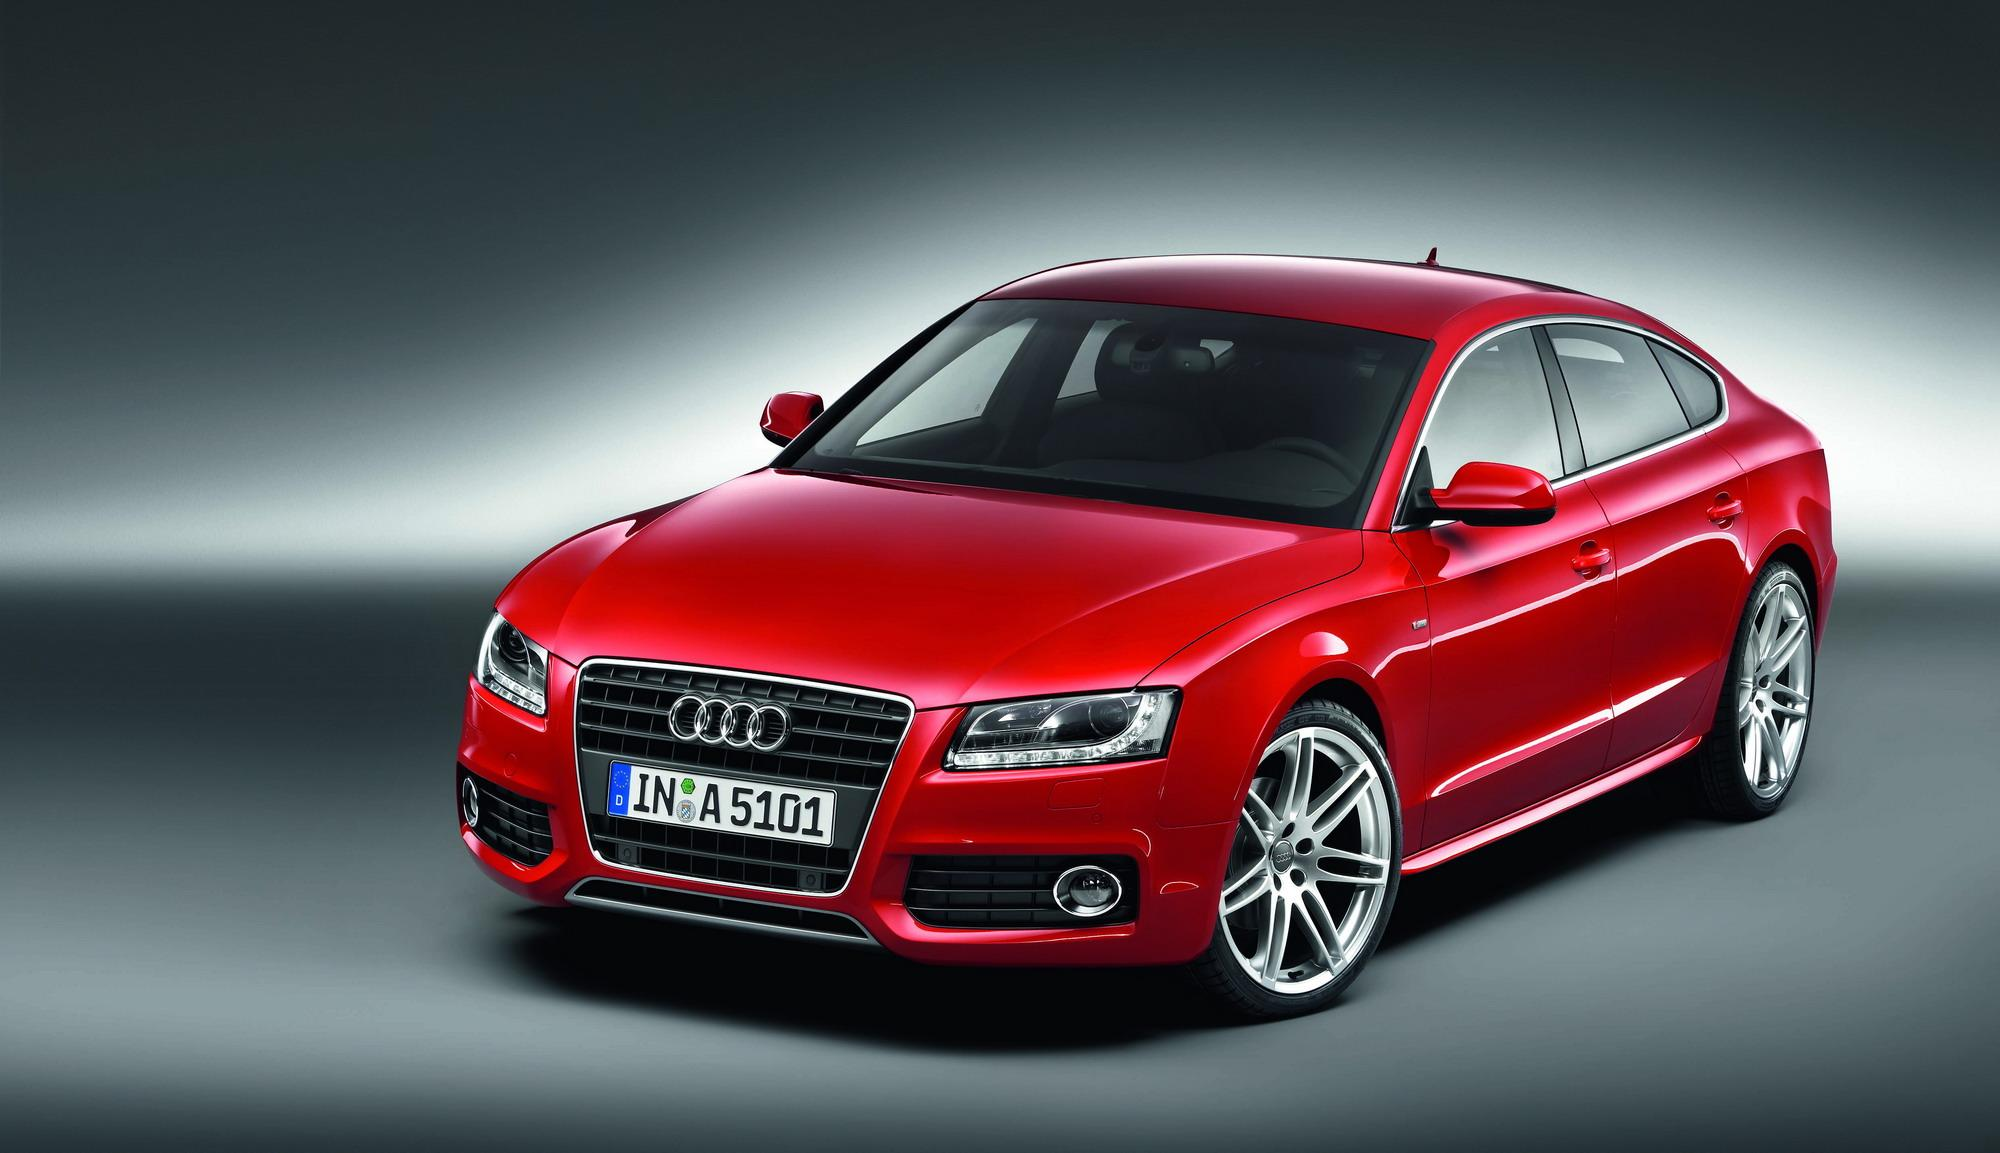 2010 audi a5 sportback review top speed. Black Bedroom Furniture Sets. Home Design Ideas